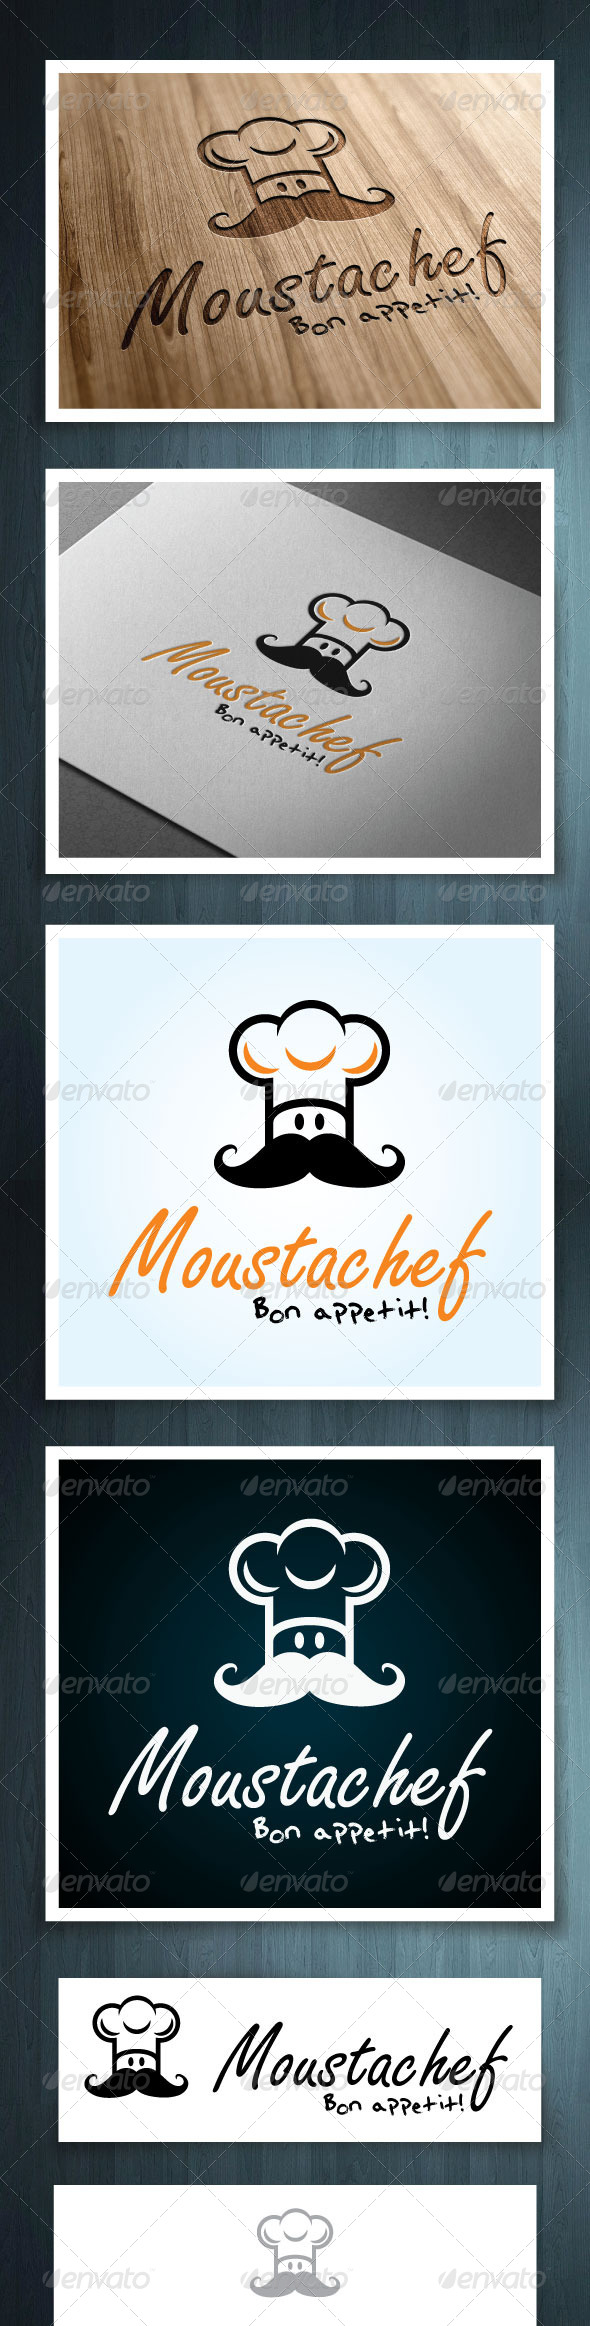 Moustachef - Vector Abstract